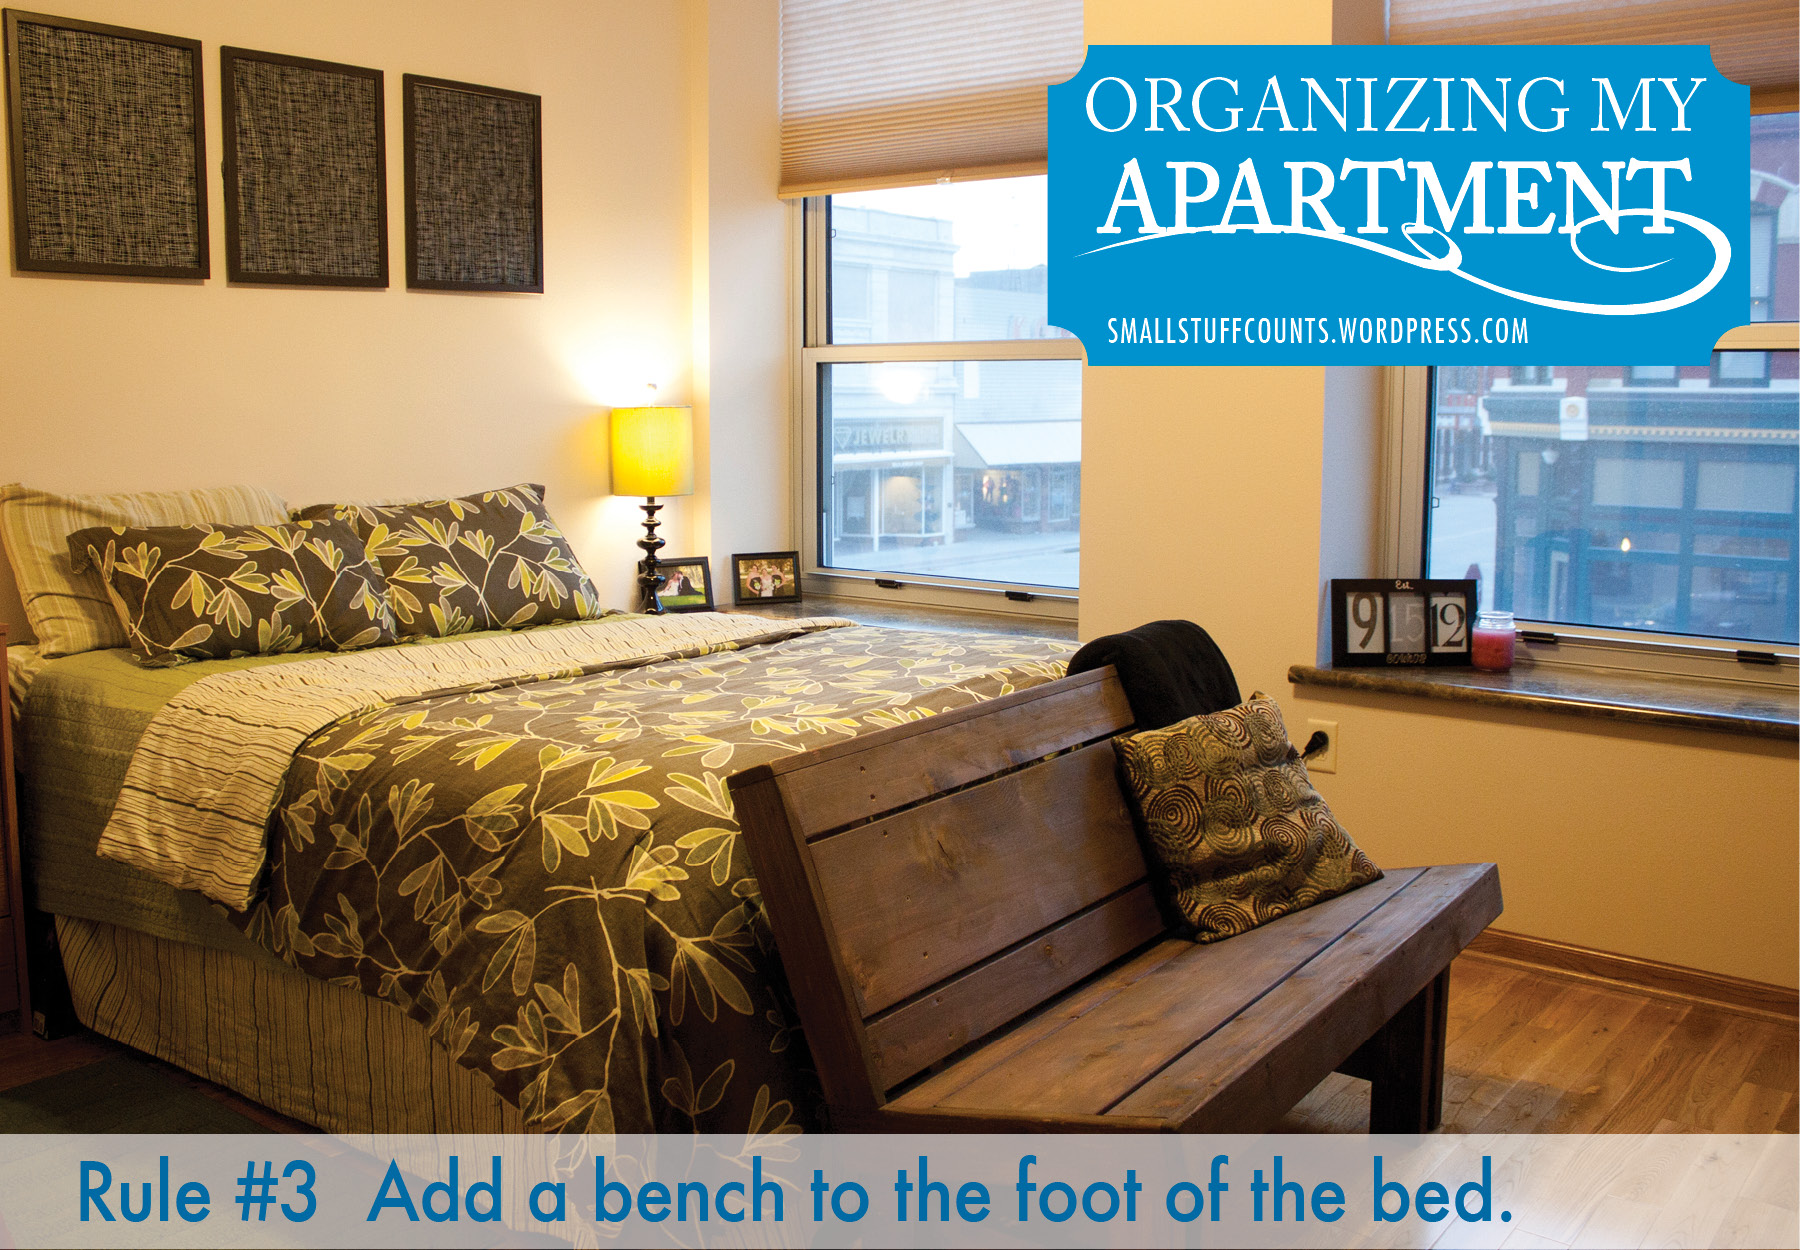 Organizing an apartment bedroom via The Small Stuff Counts Blog